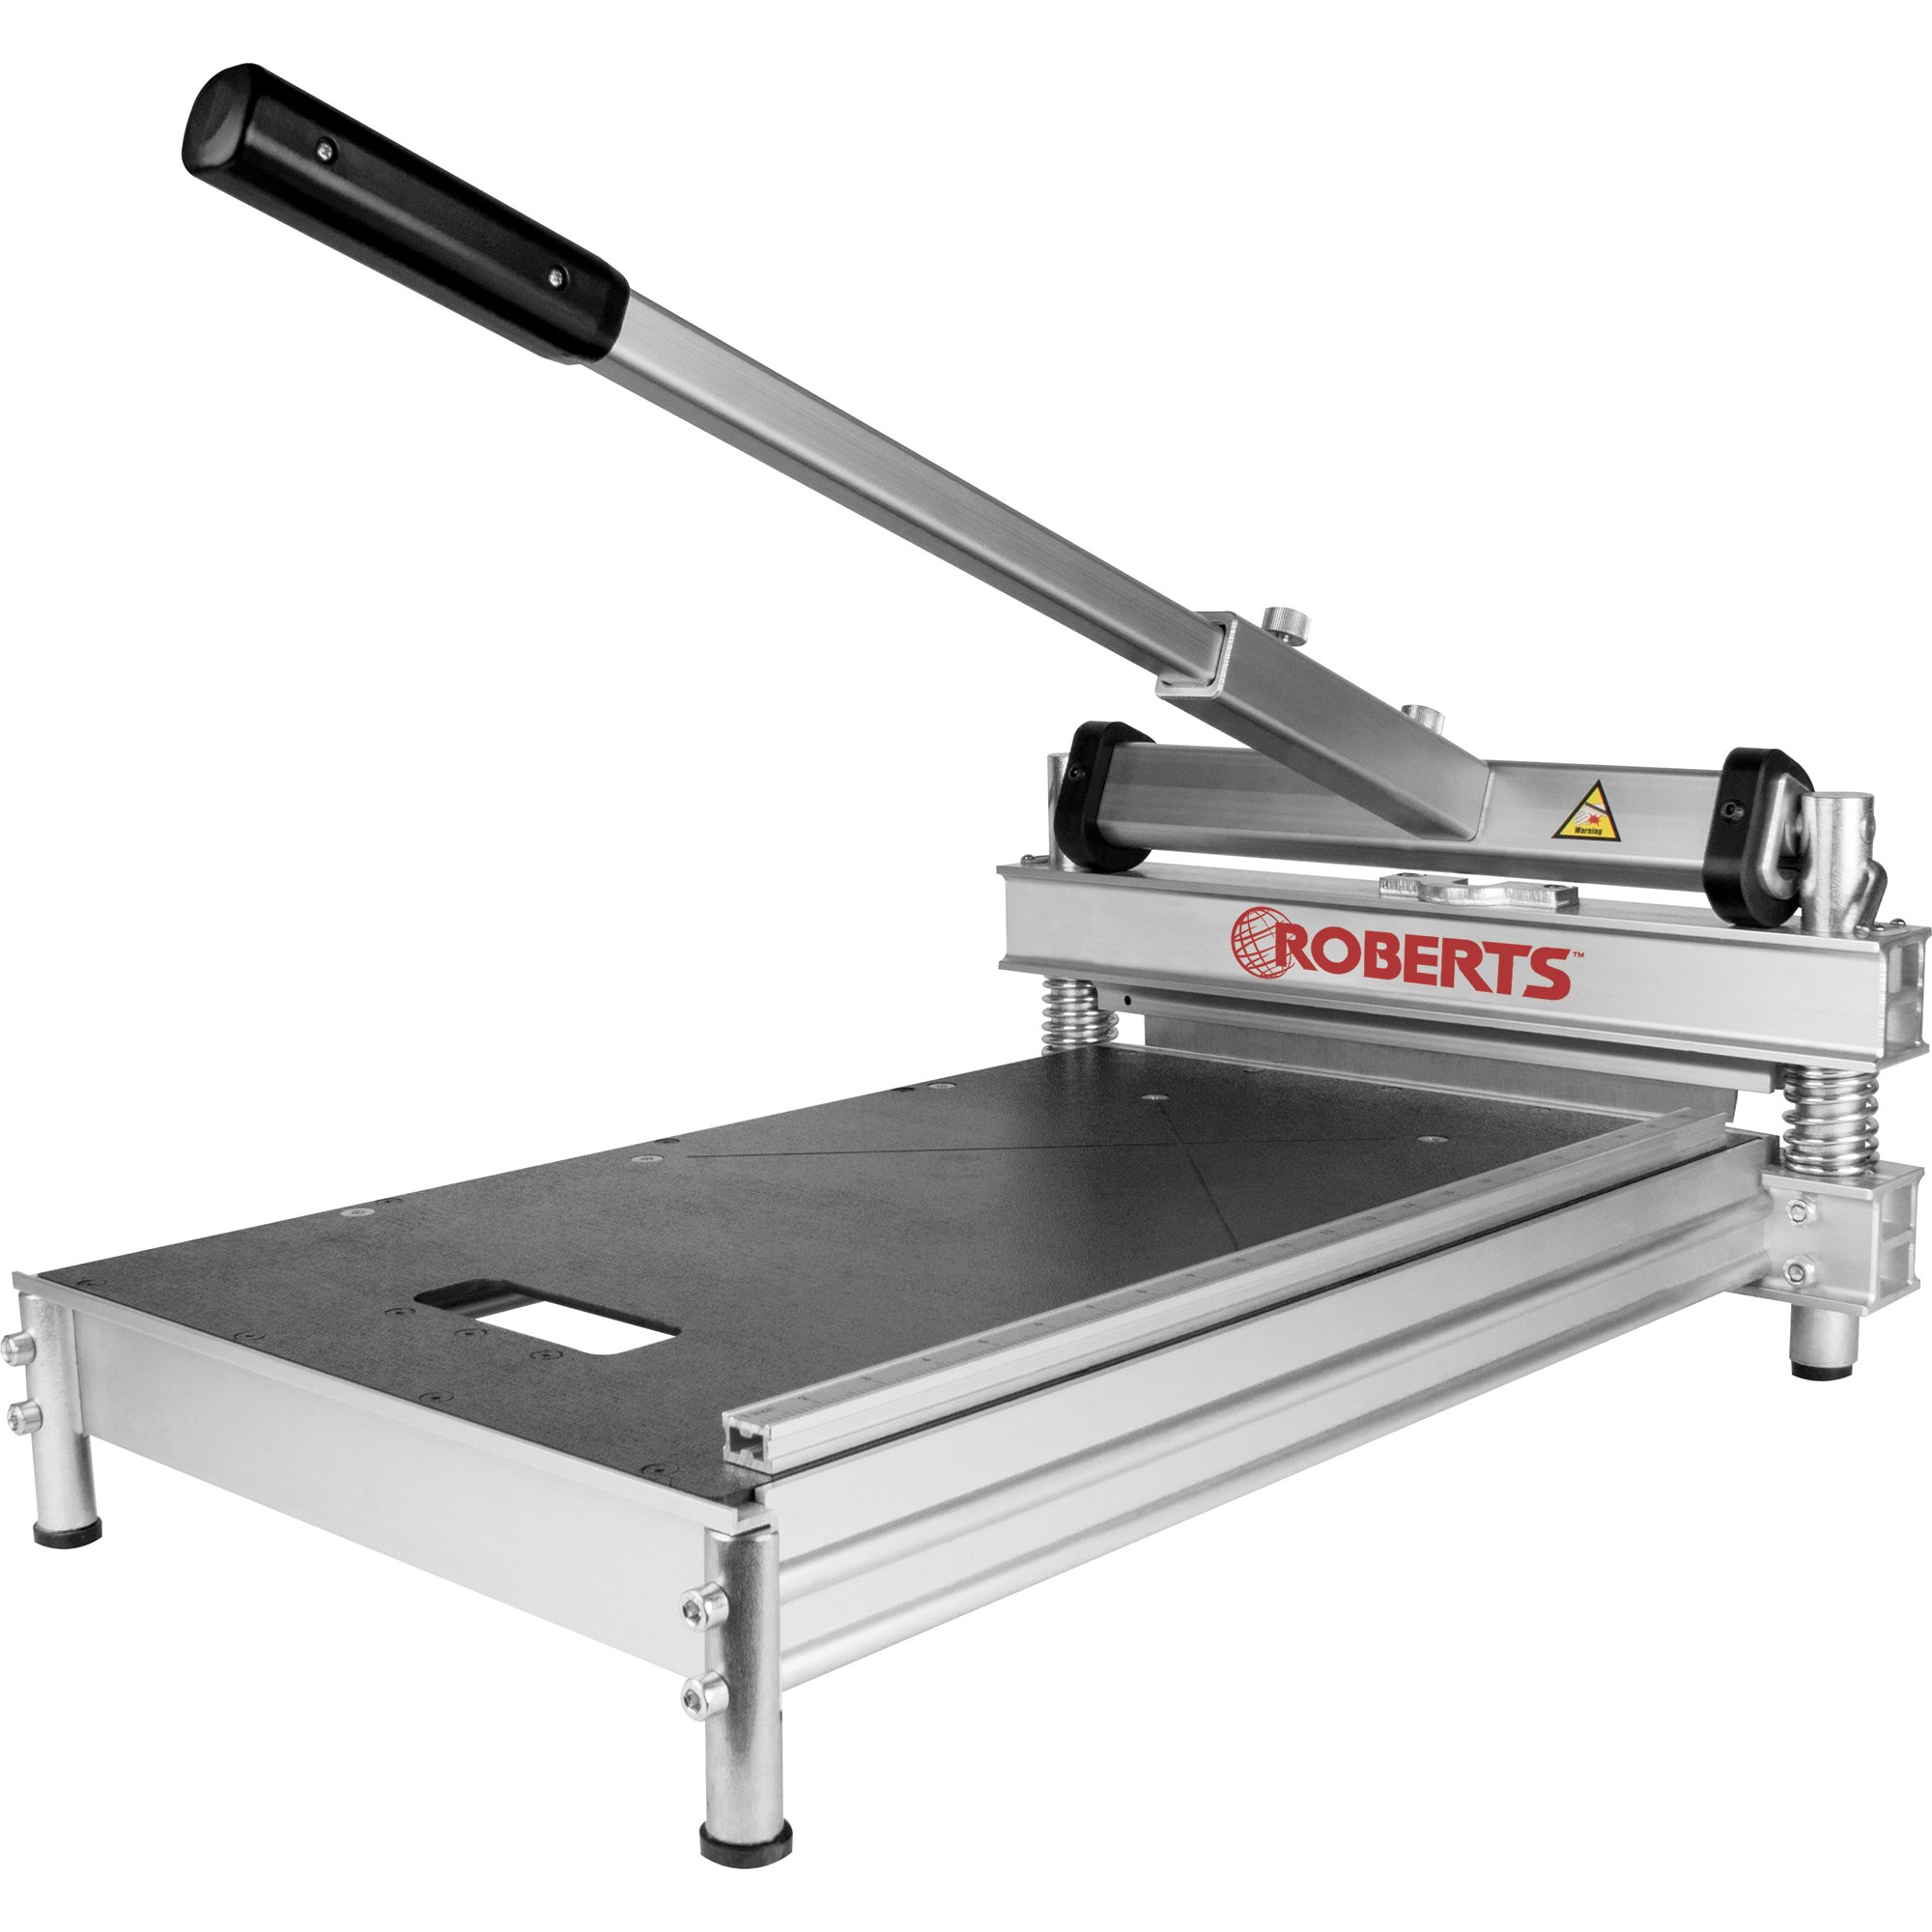 Roberts 10-94 Multi-Floor Cutter, 13-inch by Roberts (Image #1)